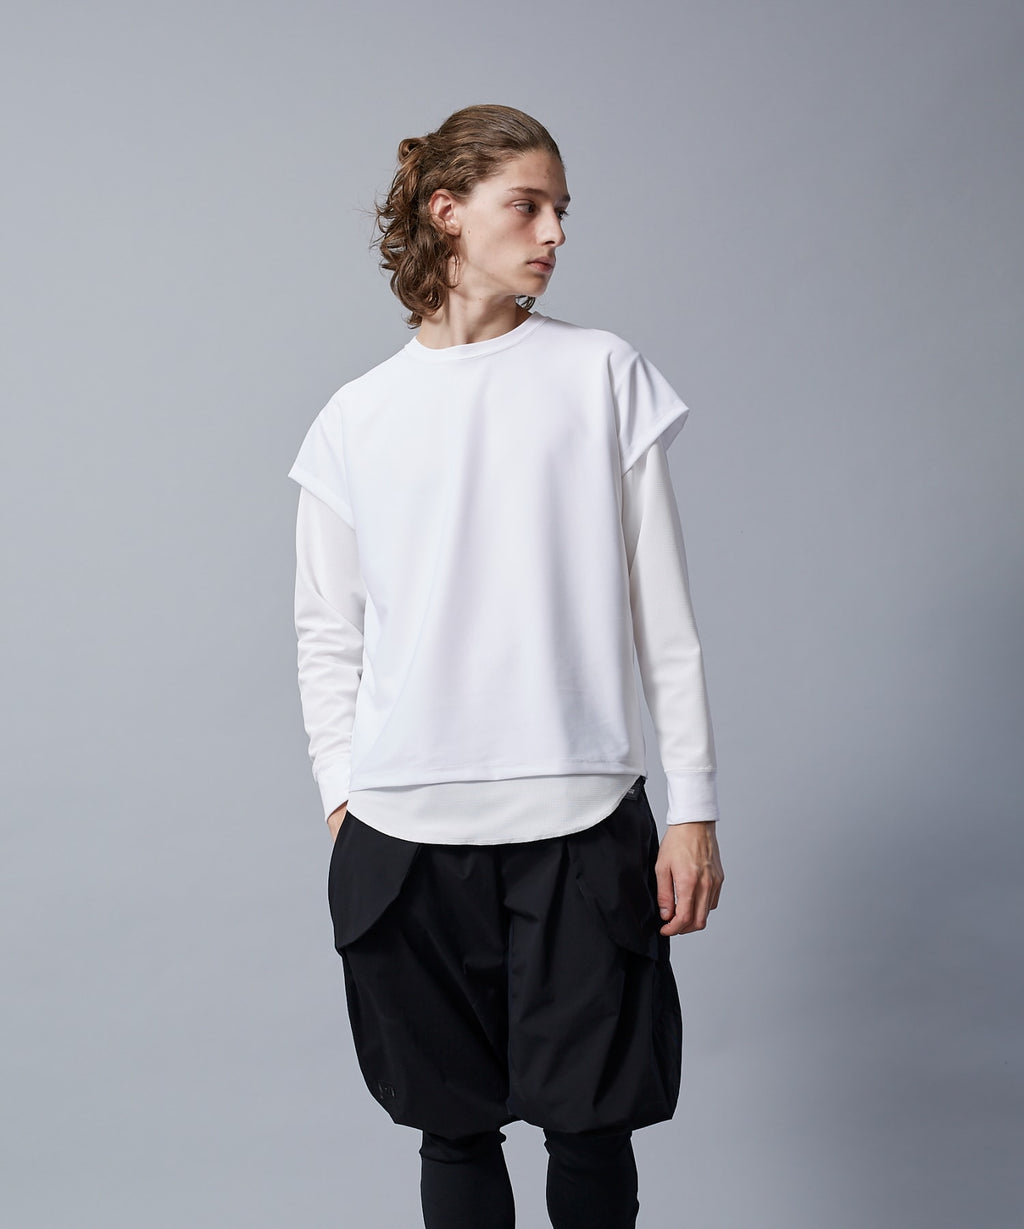 TROVE ACTIVE / LAYERED LONG SLEEVE / WHITE